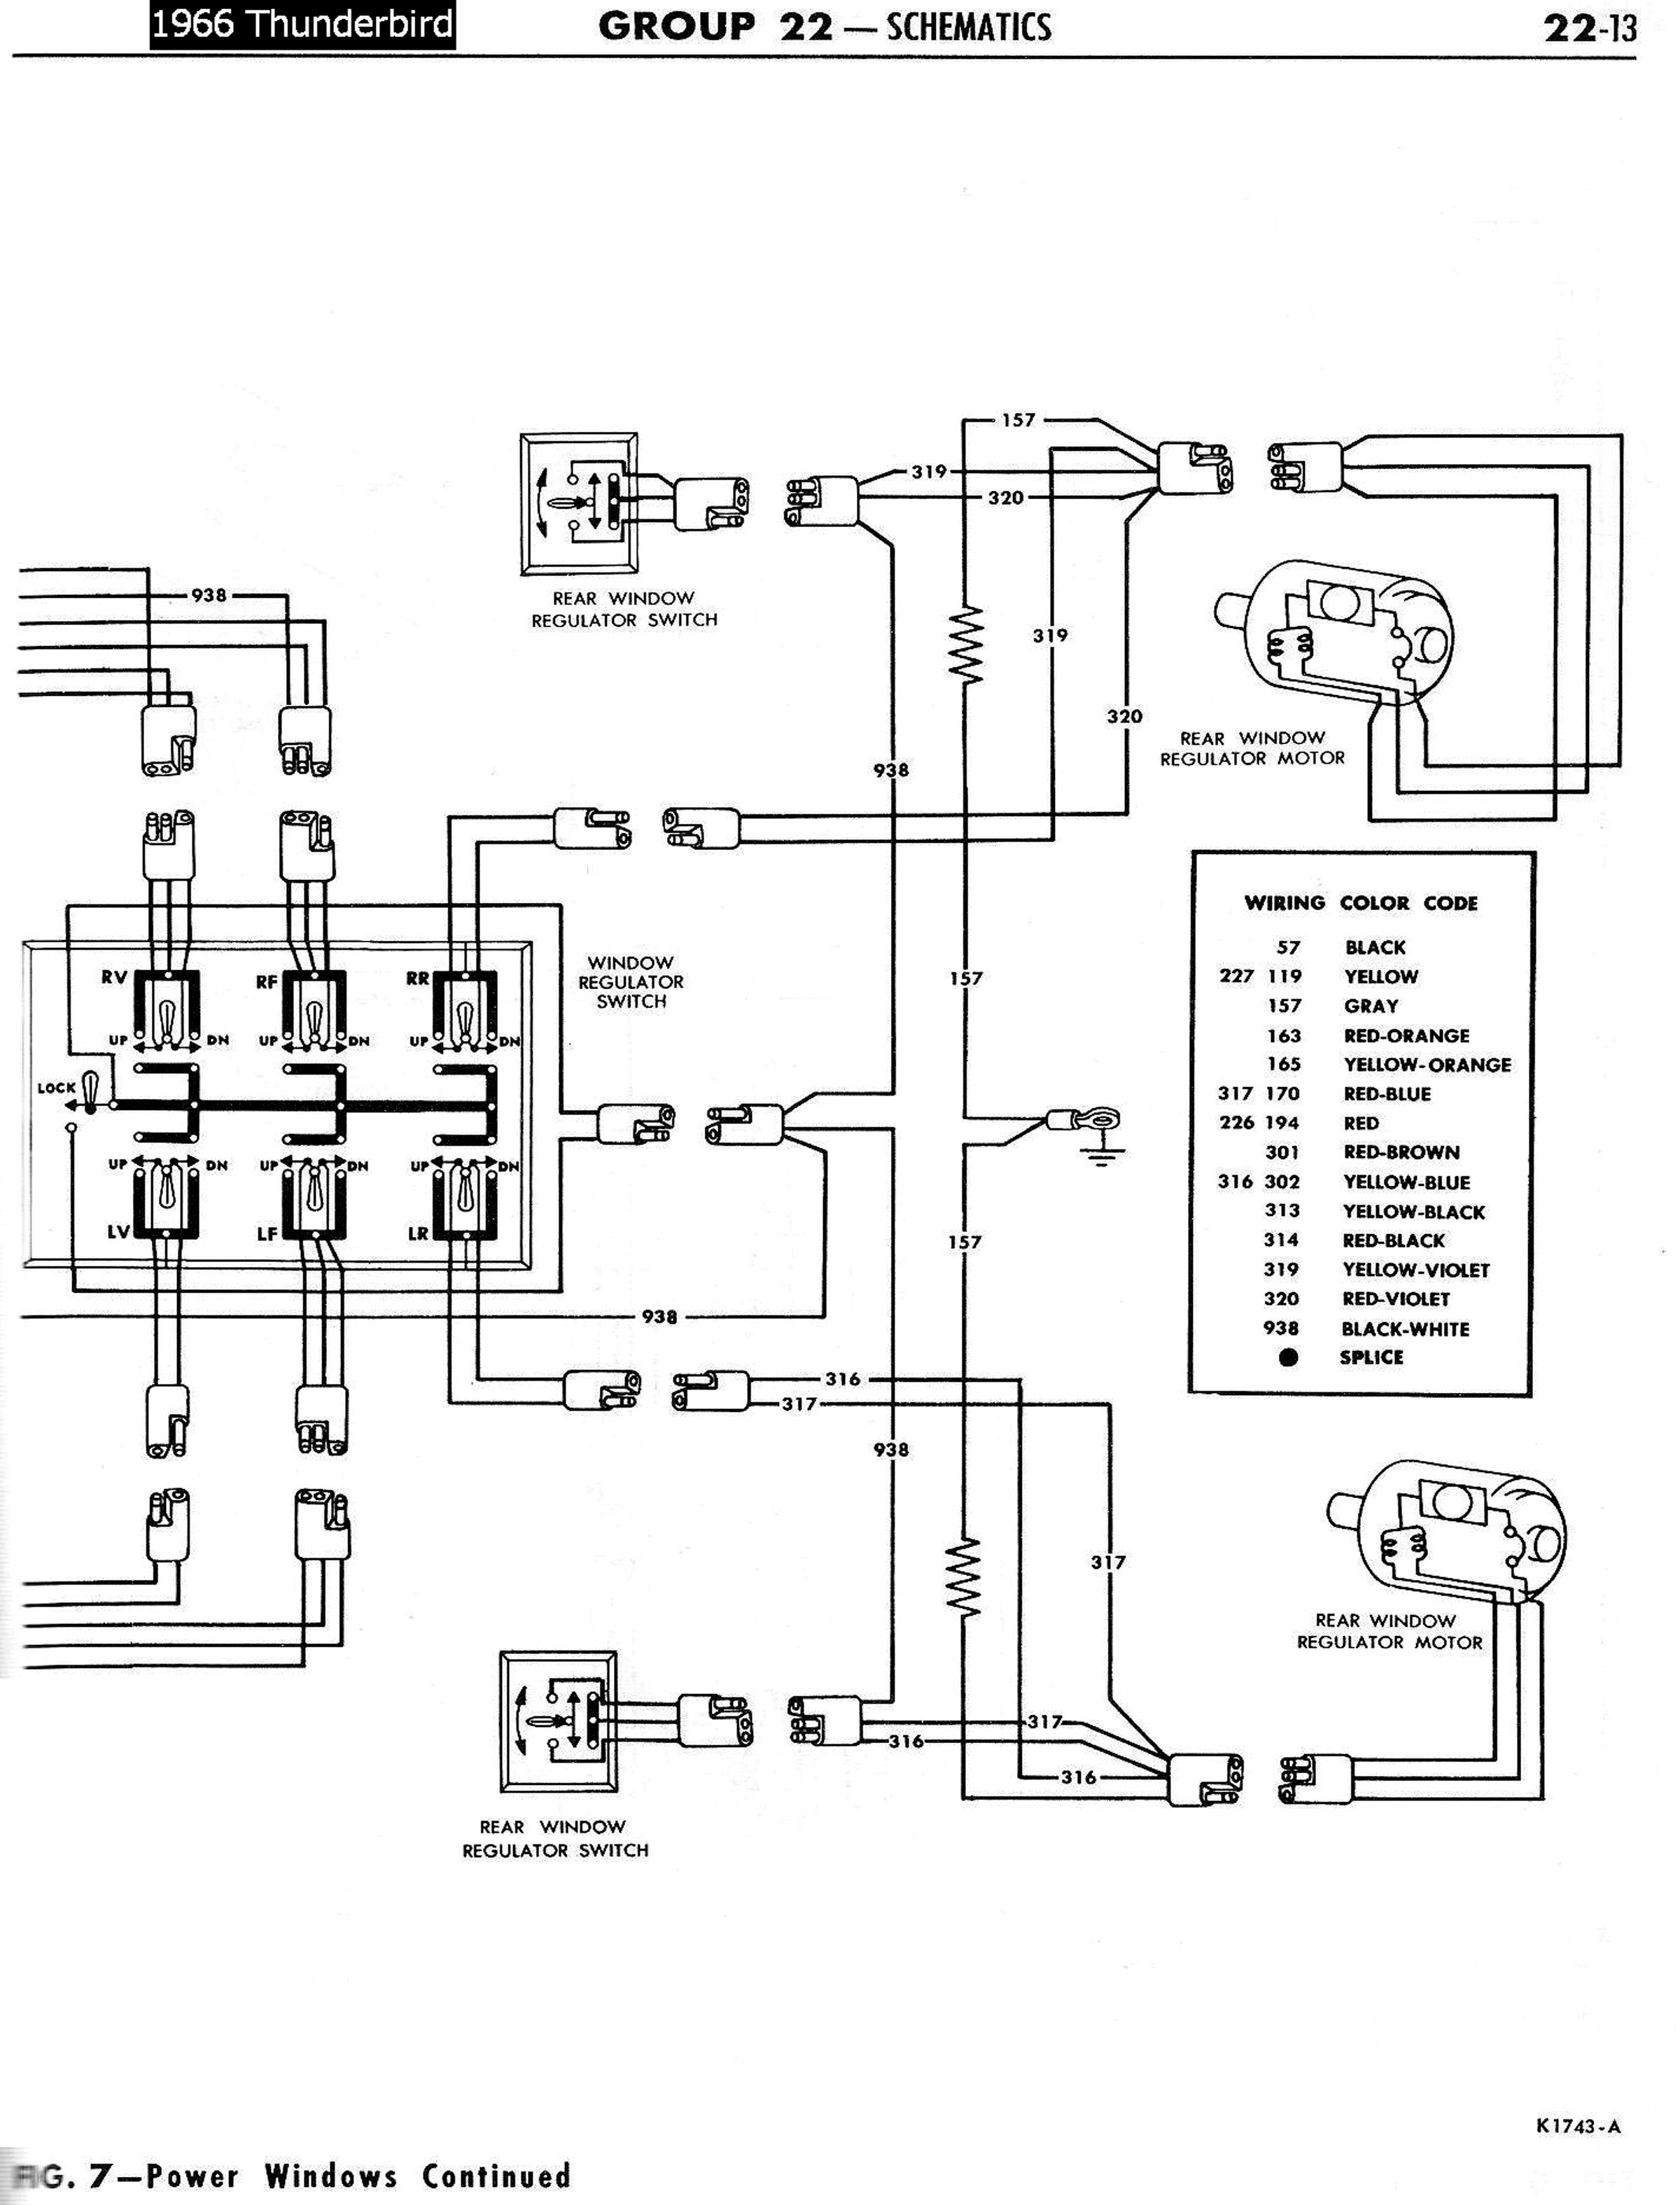 Turn Signal Flasher Diagram